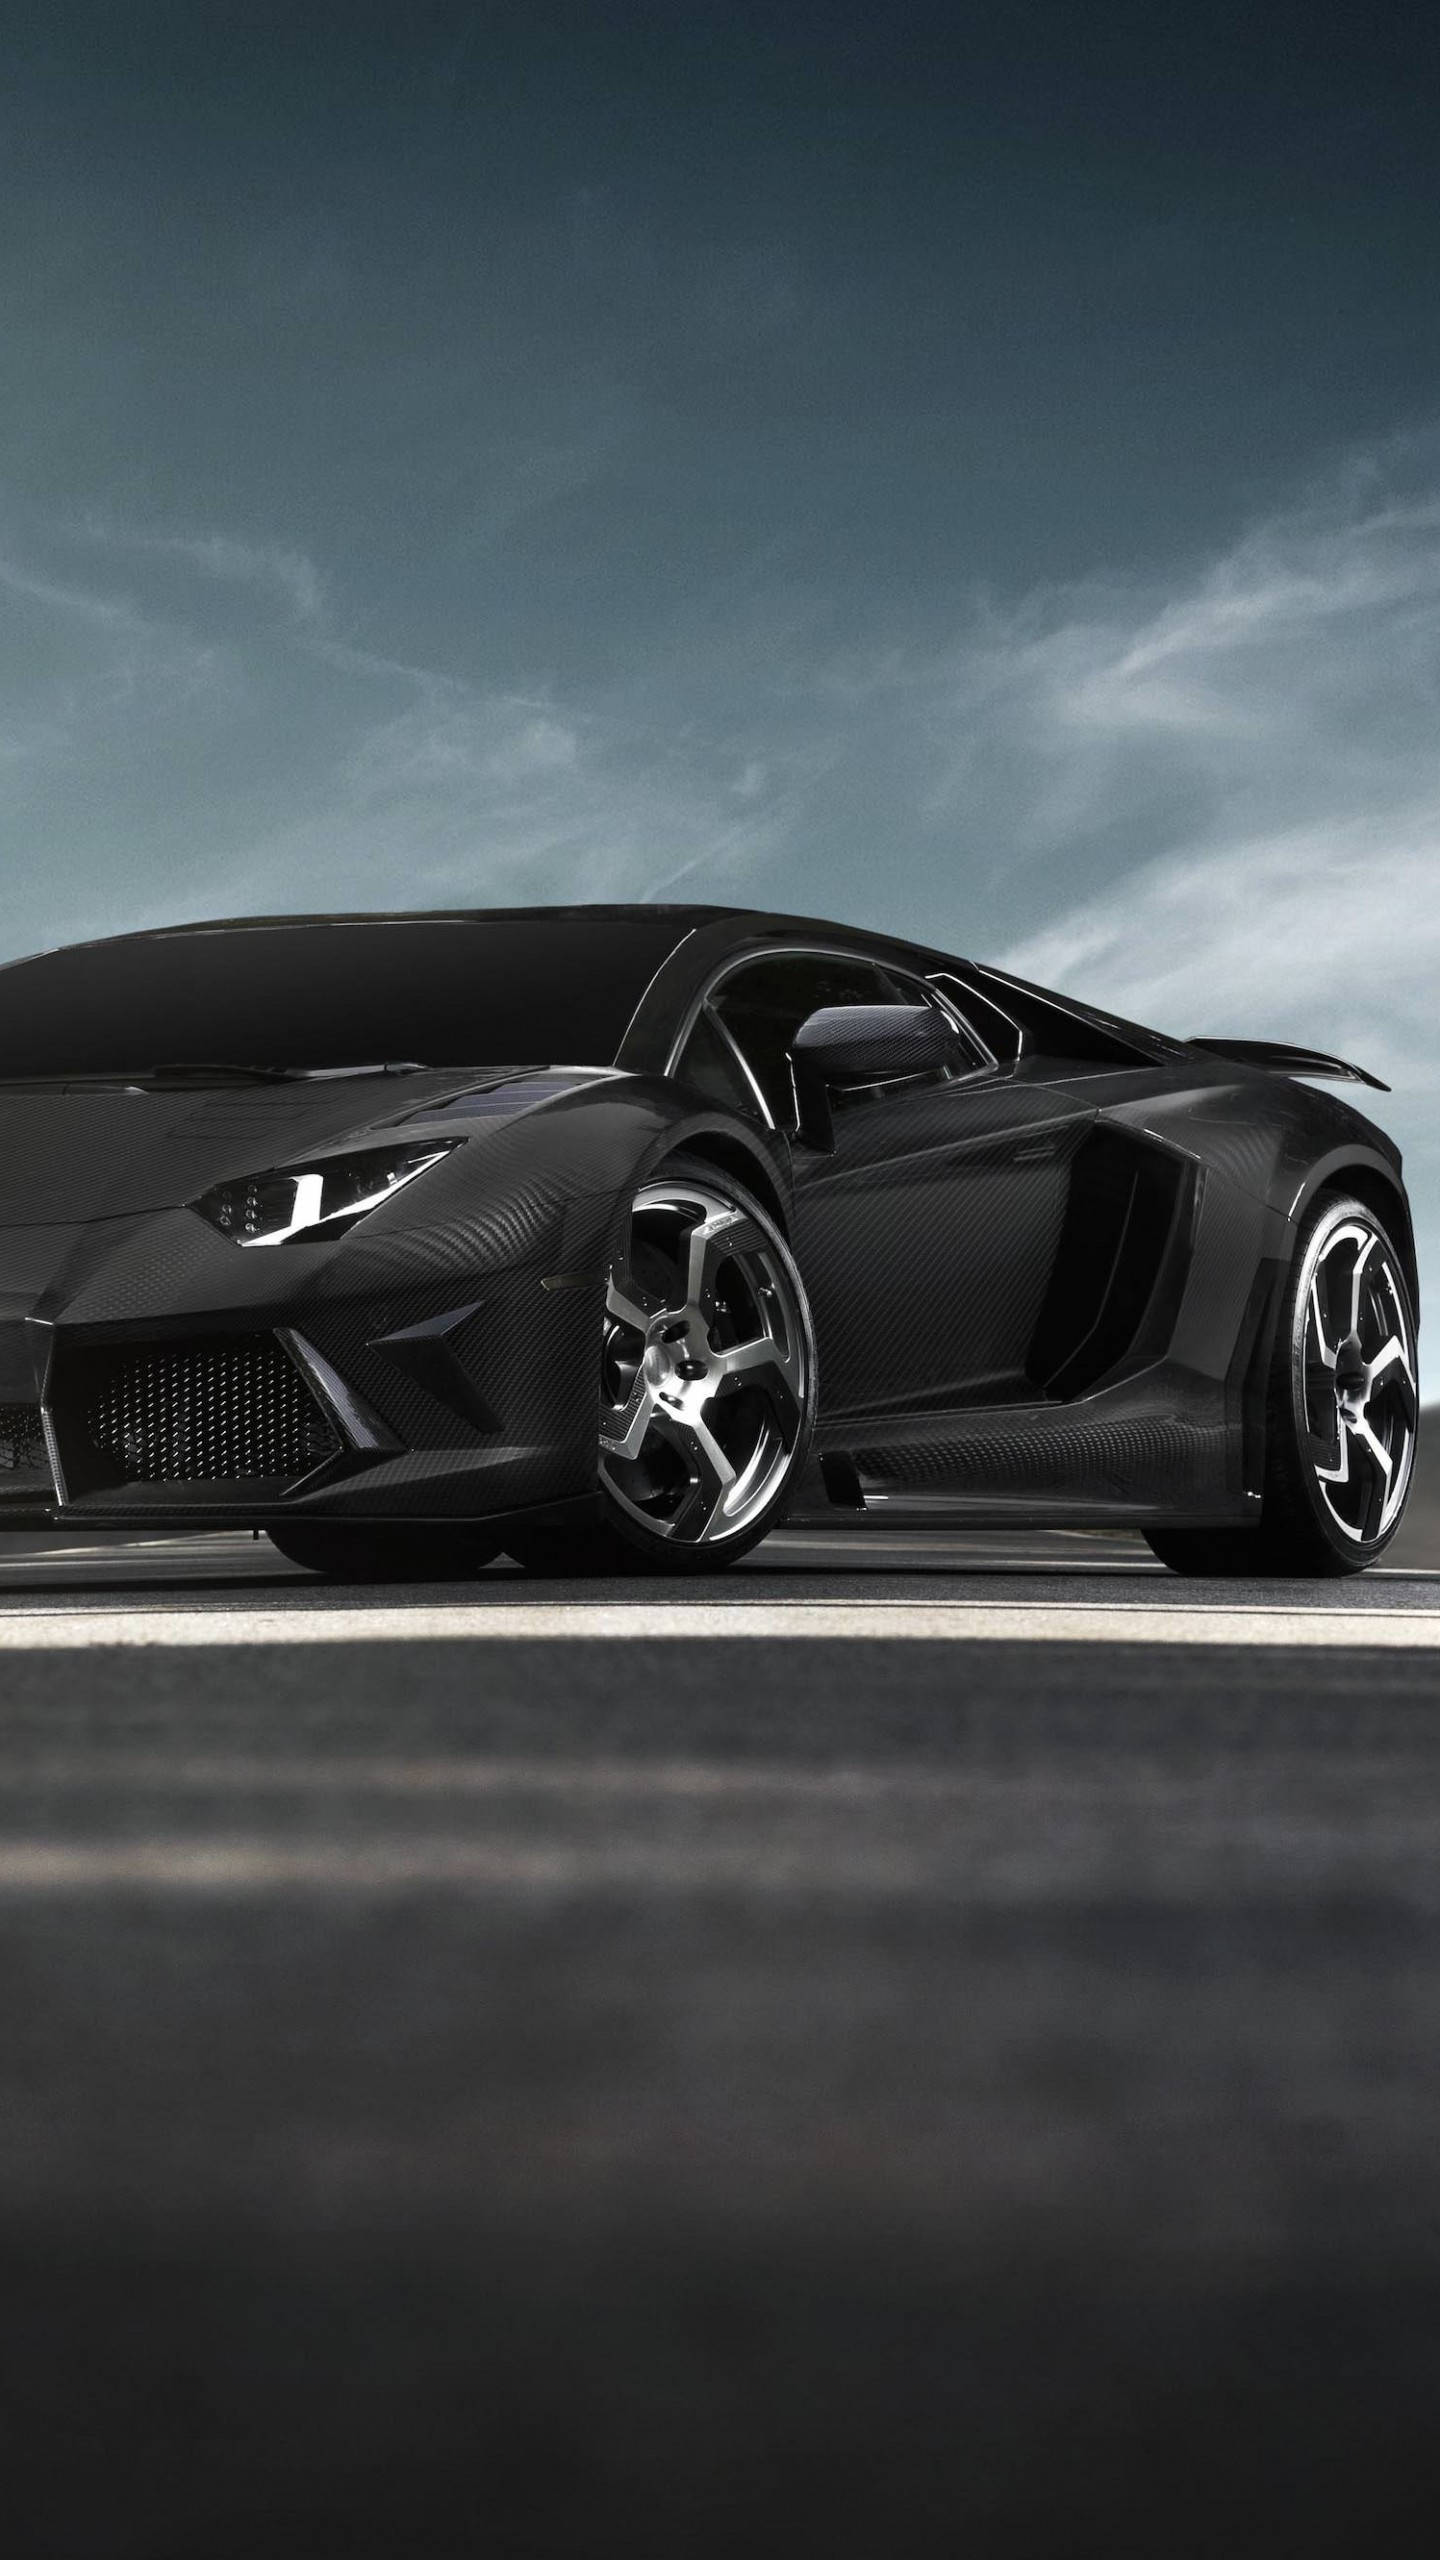 Mansory Carbonado Lamborghini Aventador LP700-4 Wallpaper for LG G3